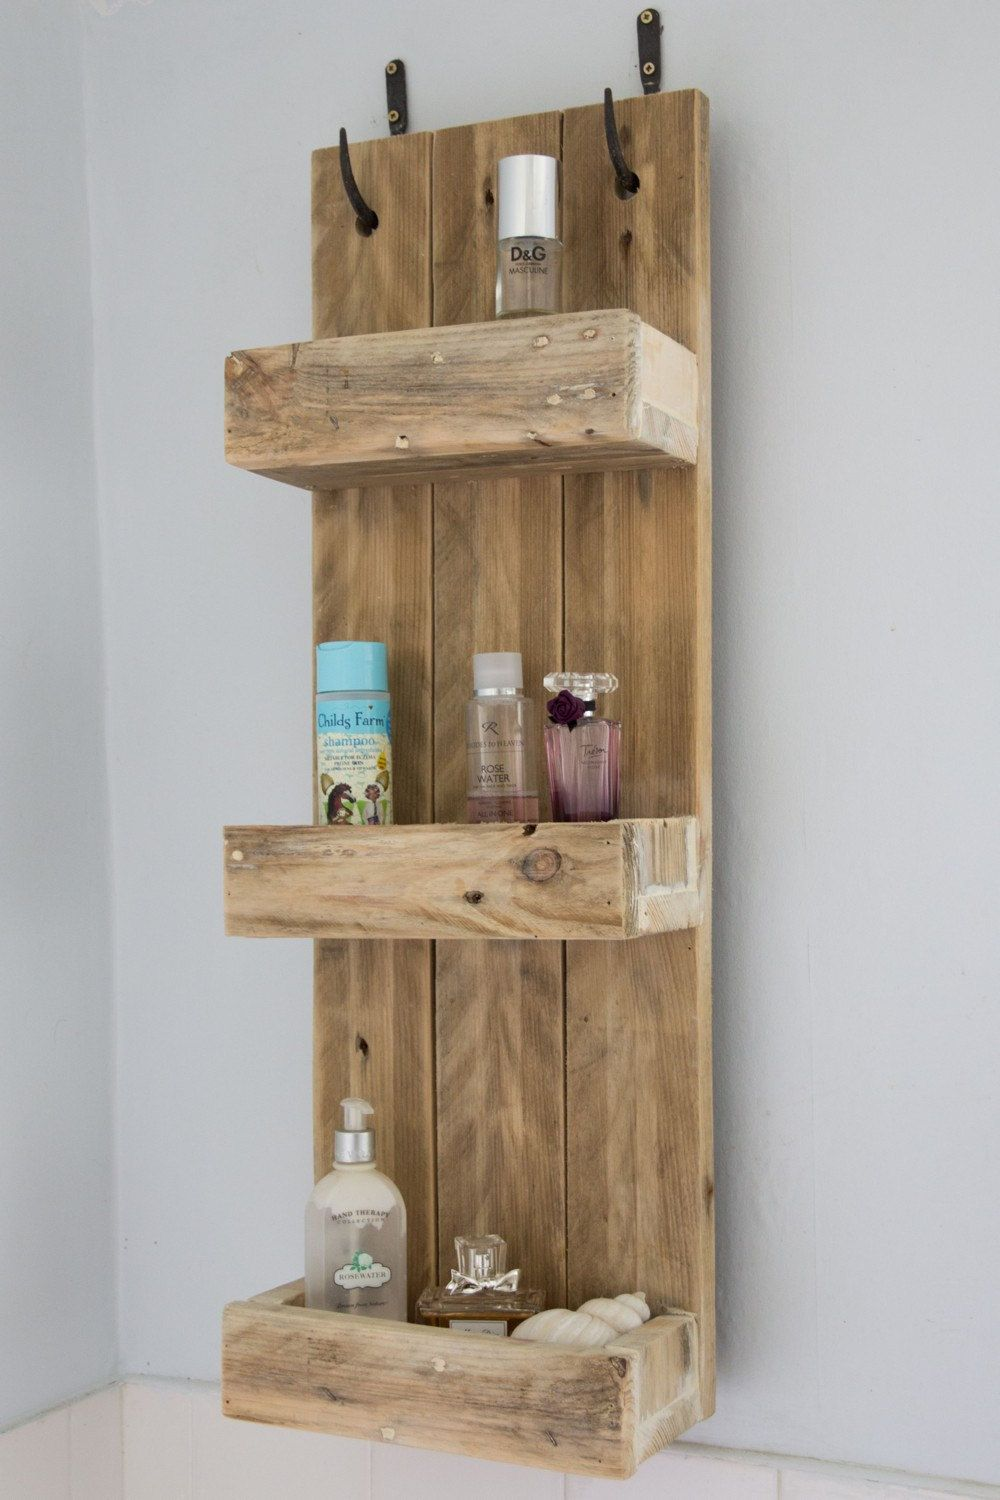 Recuperado Pallet Madera Estantes De Bano Con Tres Estantes Las Dimensiones Son 34 Pulgadas Rustic Bathroom Shelves Bathroom Wood Shelves Diy Pallet Projects